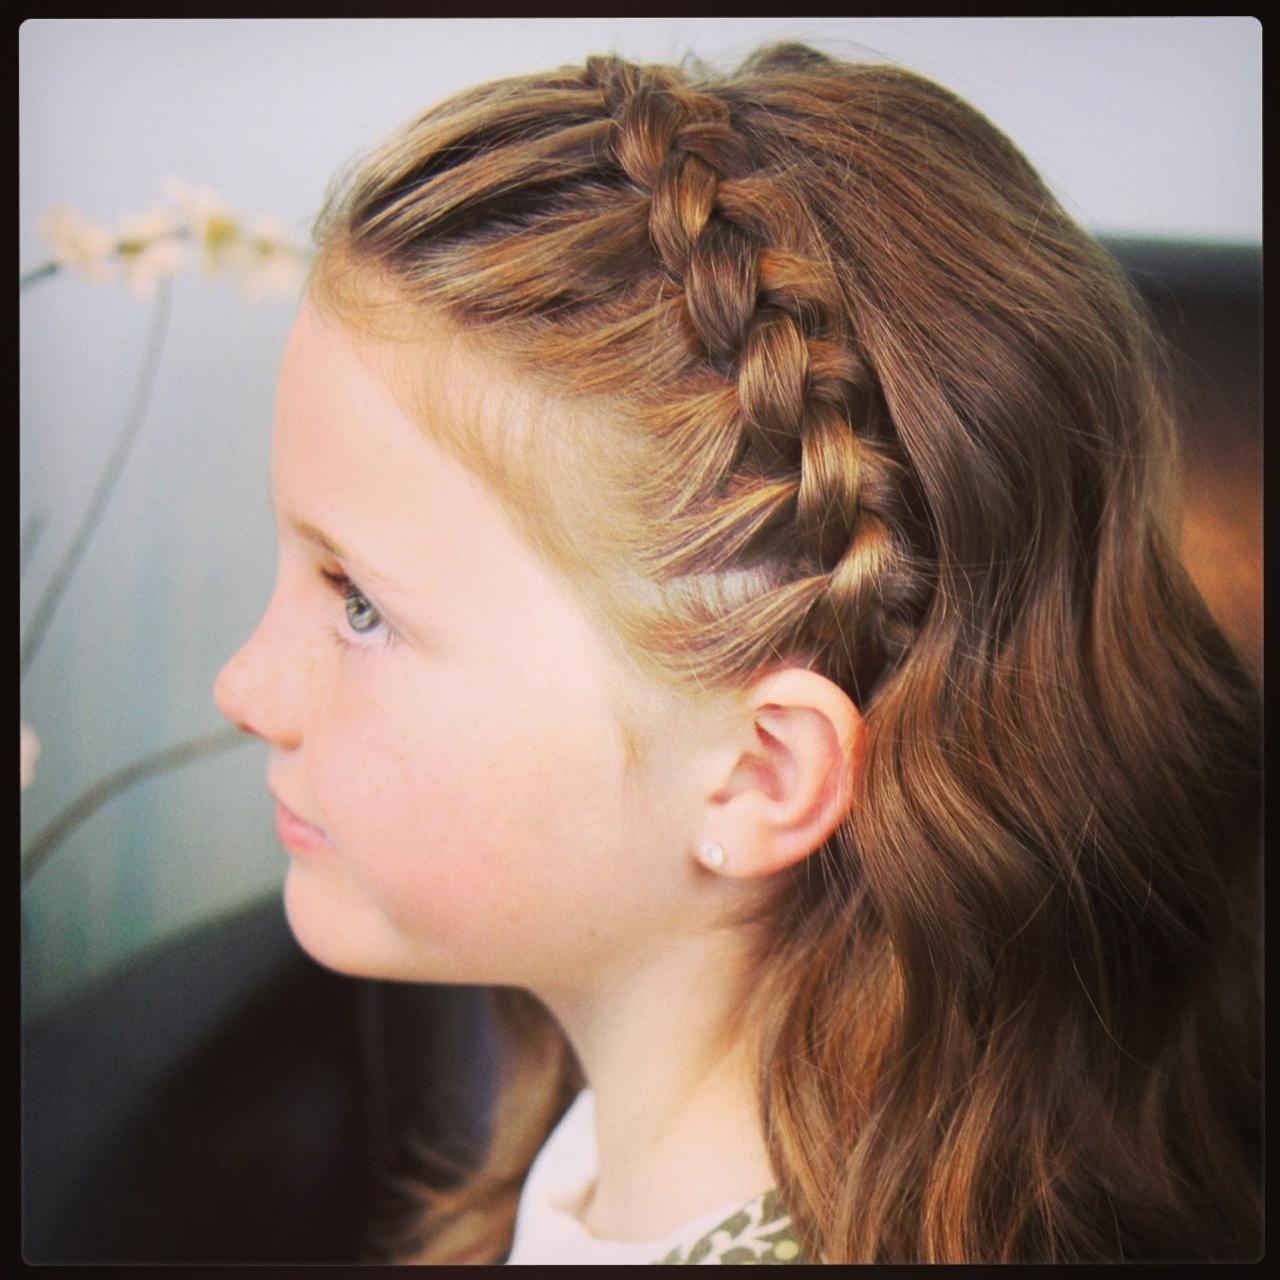 Cute Long Little Girls Hairstyles For School: How To Style Braid Intended For Cute Short Hairstyles With Headbands (View 16 of 25)